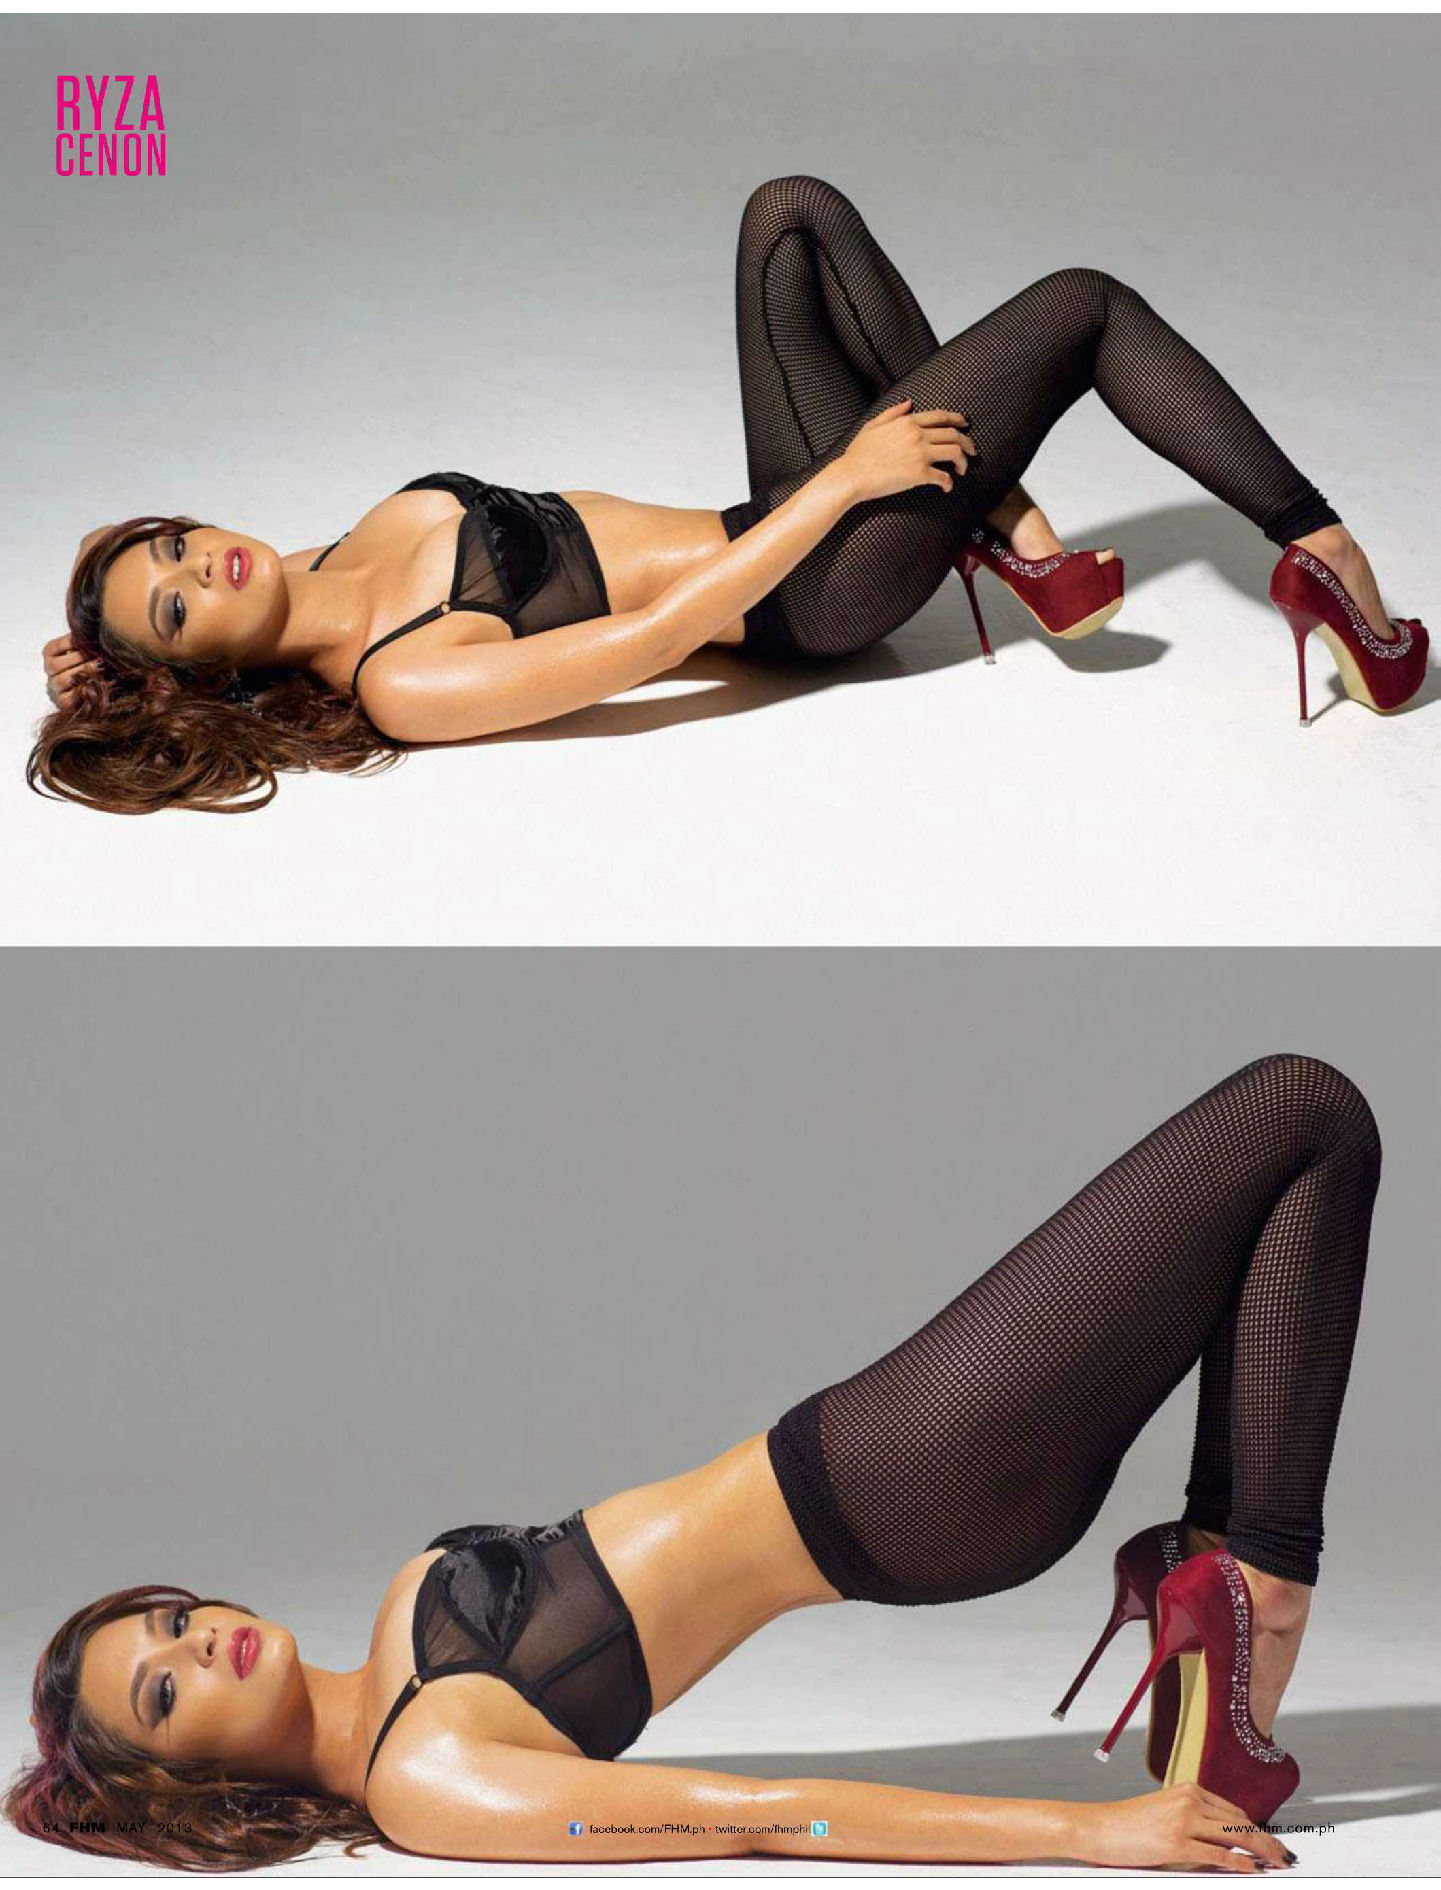 RyzaCenonFHMPhilippinesMay201311 SAWFIRST Hot Celebrity Pictures